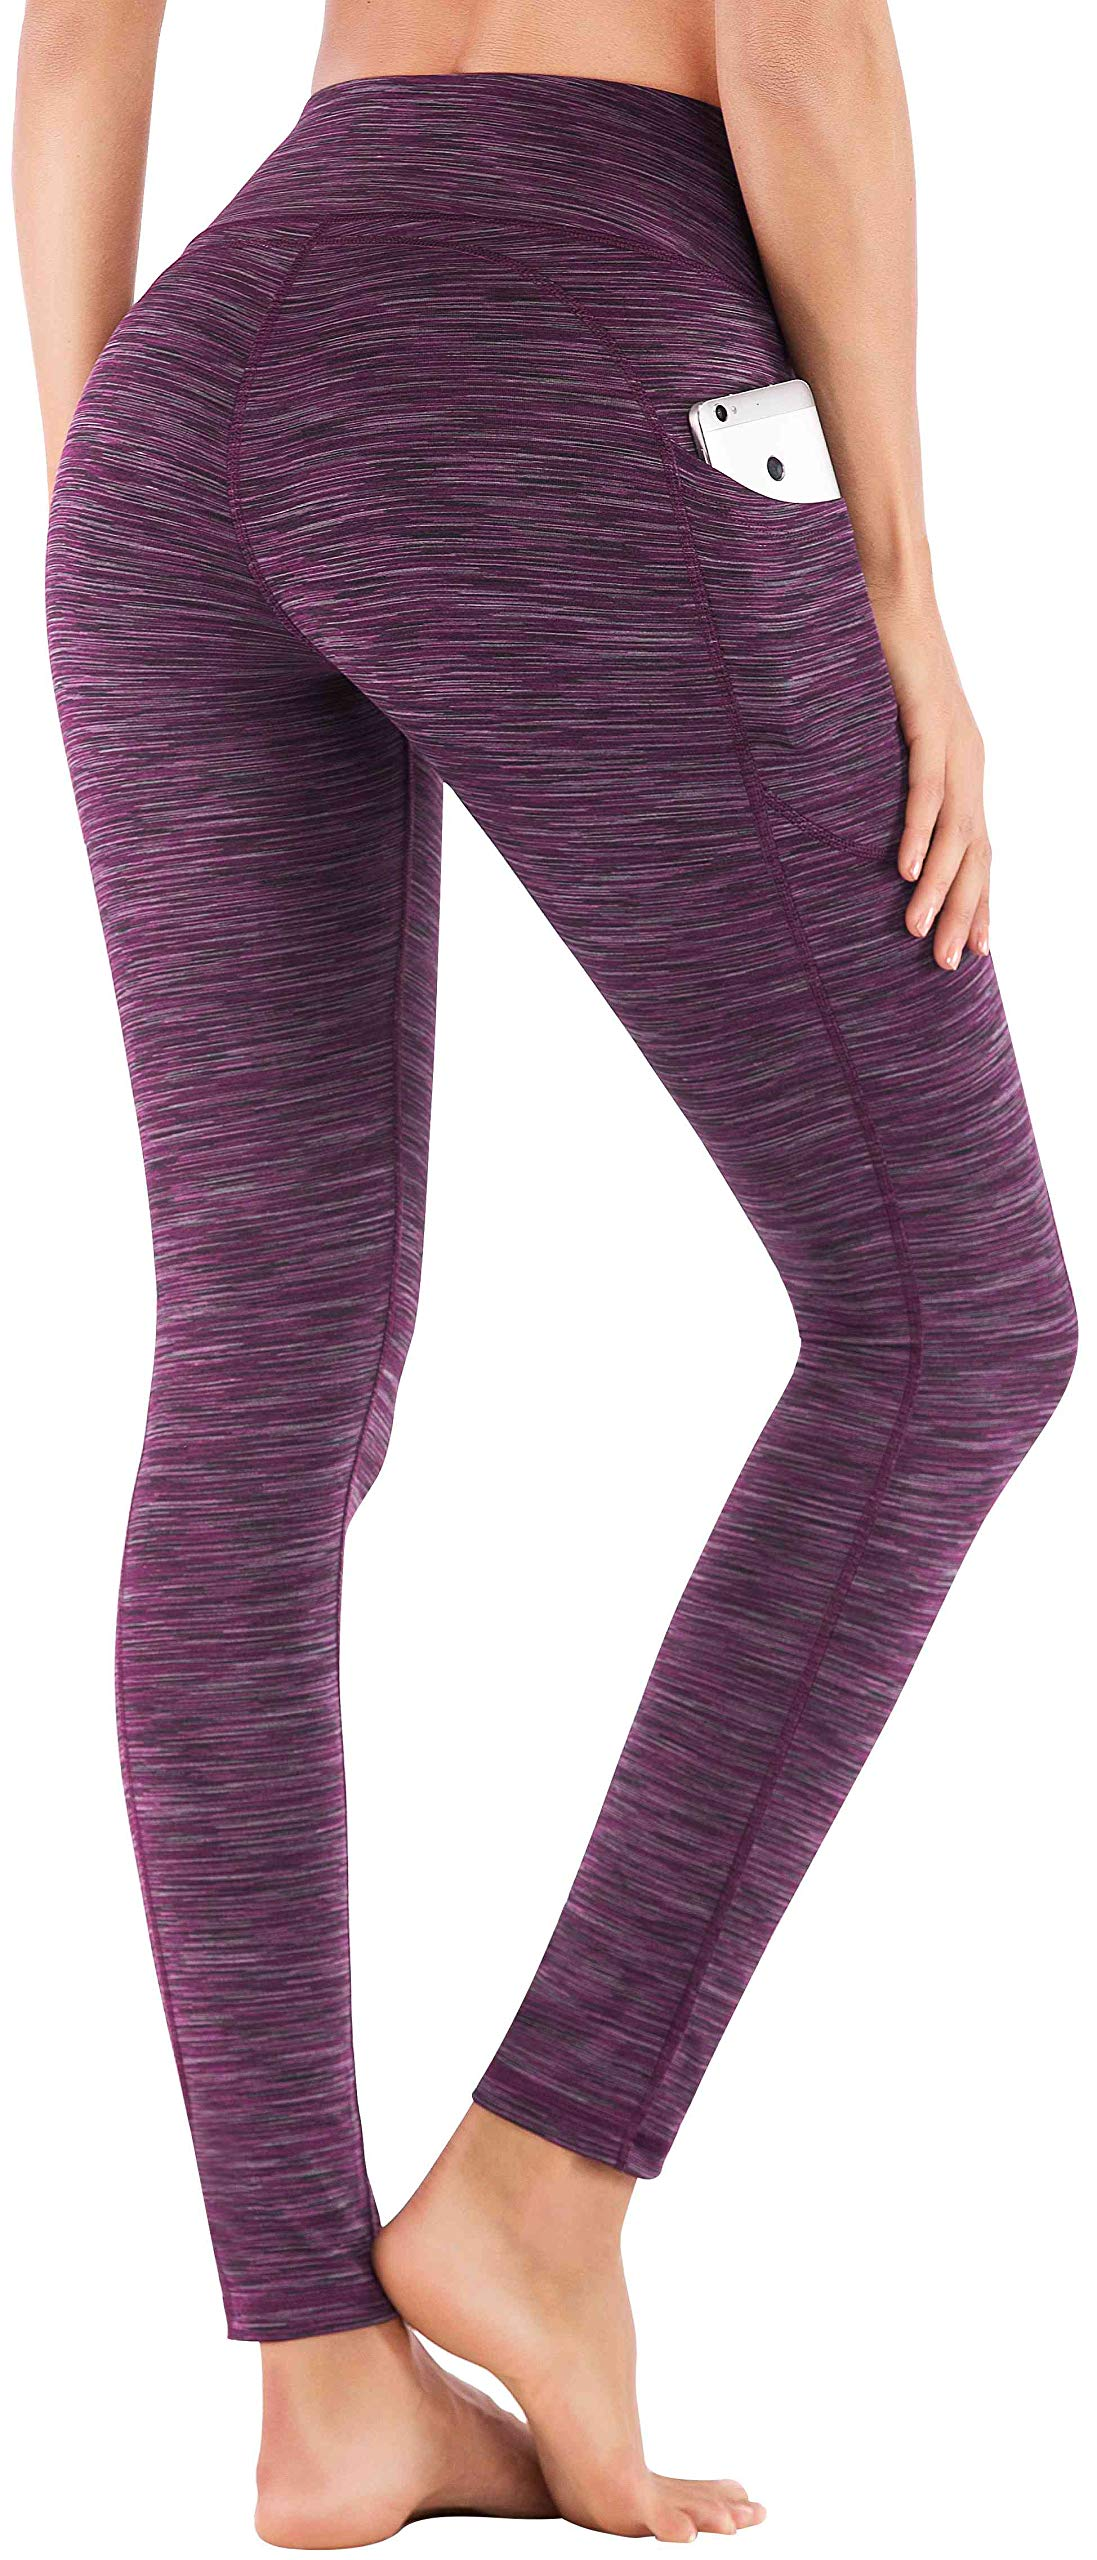 IUGA High Waist Yoga Pants with Pockets, Tummy Control, Workout Pants for Women 4 Way Stretch Yoga Leggings with Pockets (Space Dye Purple, X-Large) by IUGA